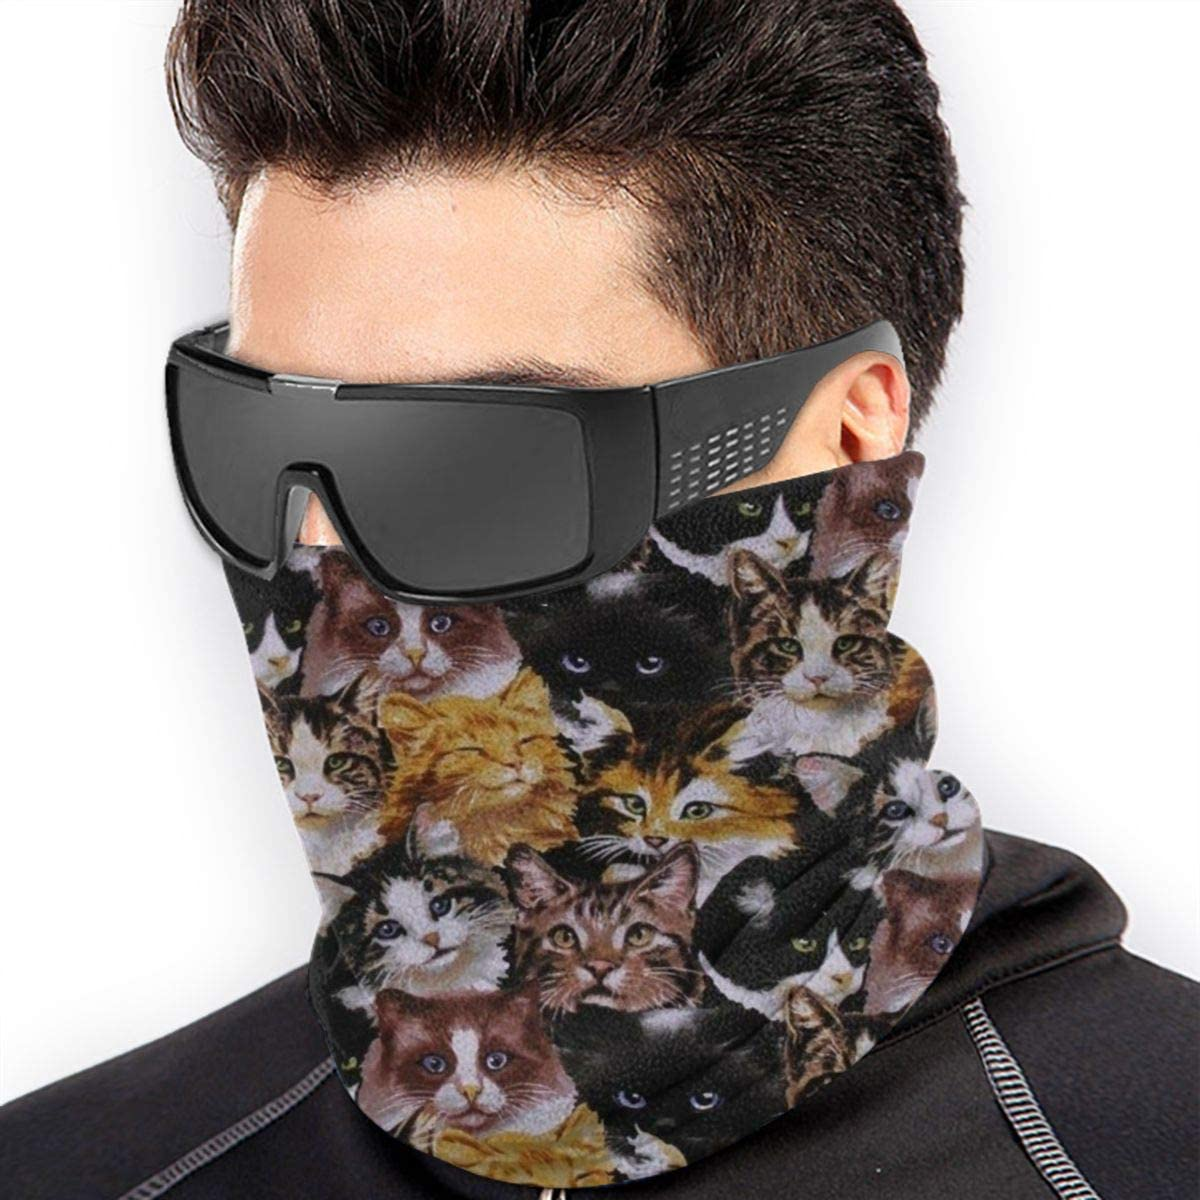 CLERO& Scarf Fleece Neck Warmer Cat Faces Vintage Windproof Outdoor Headwear Comfortable Neck Gaiter Warmer Face Mask for Cold Weather Winter Outdoor Sports